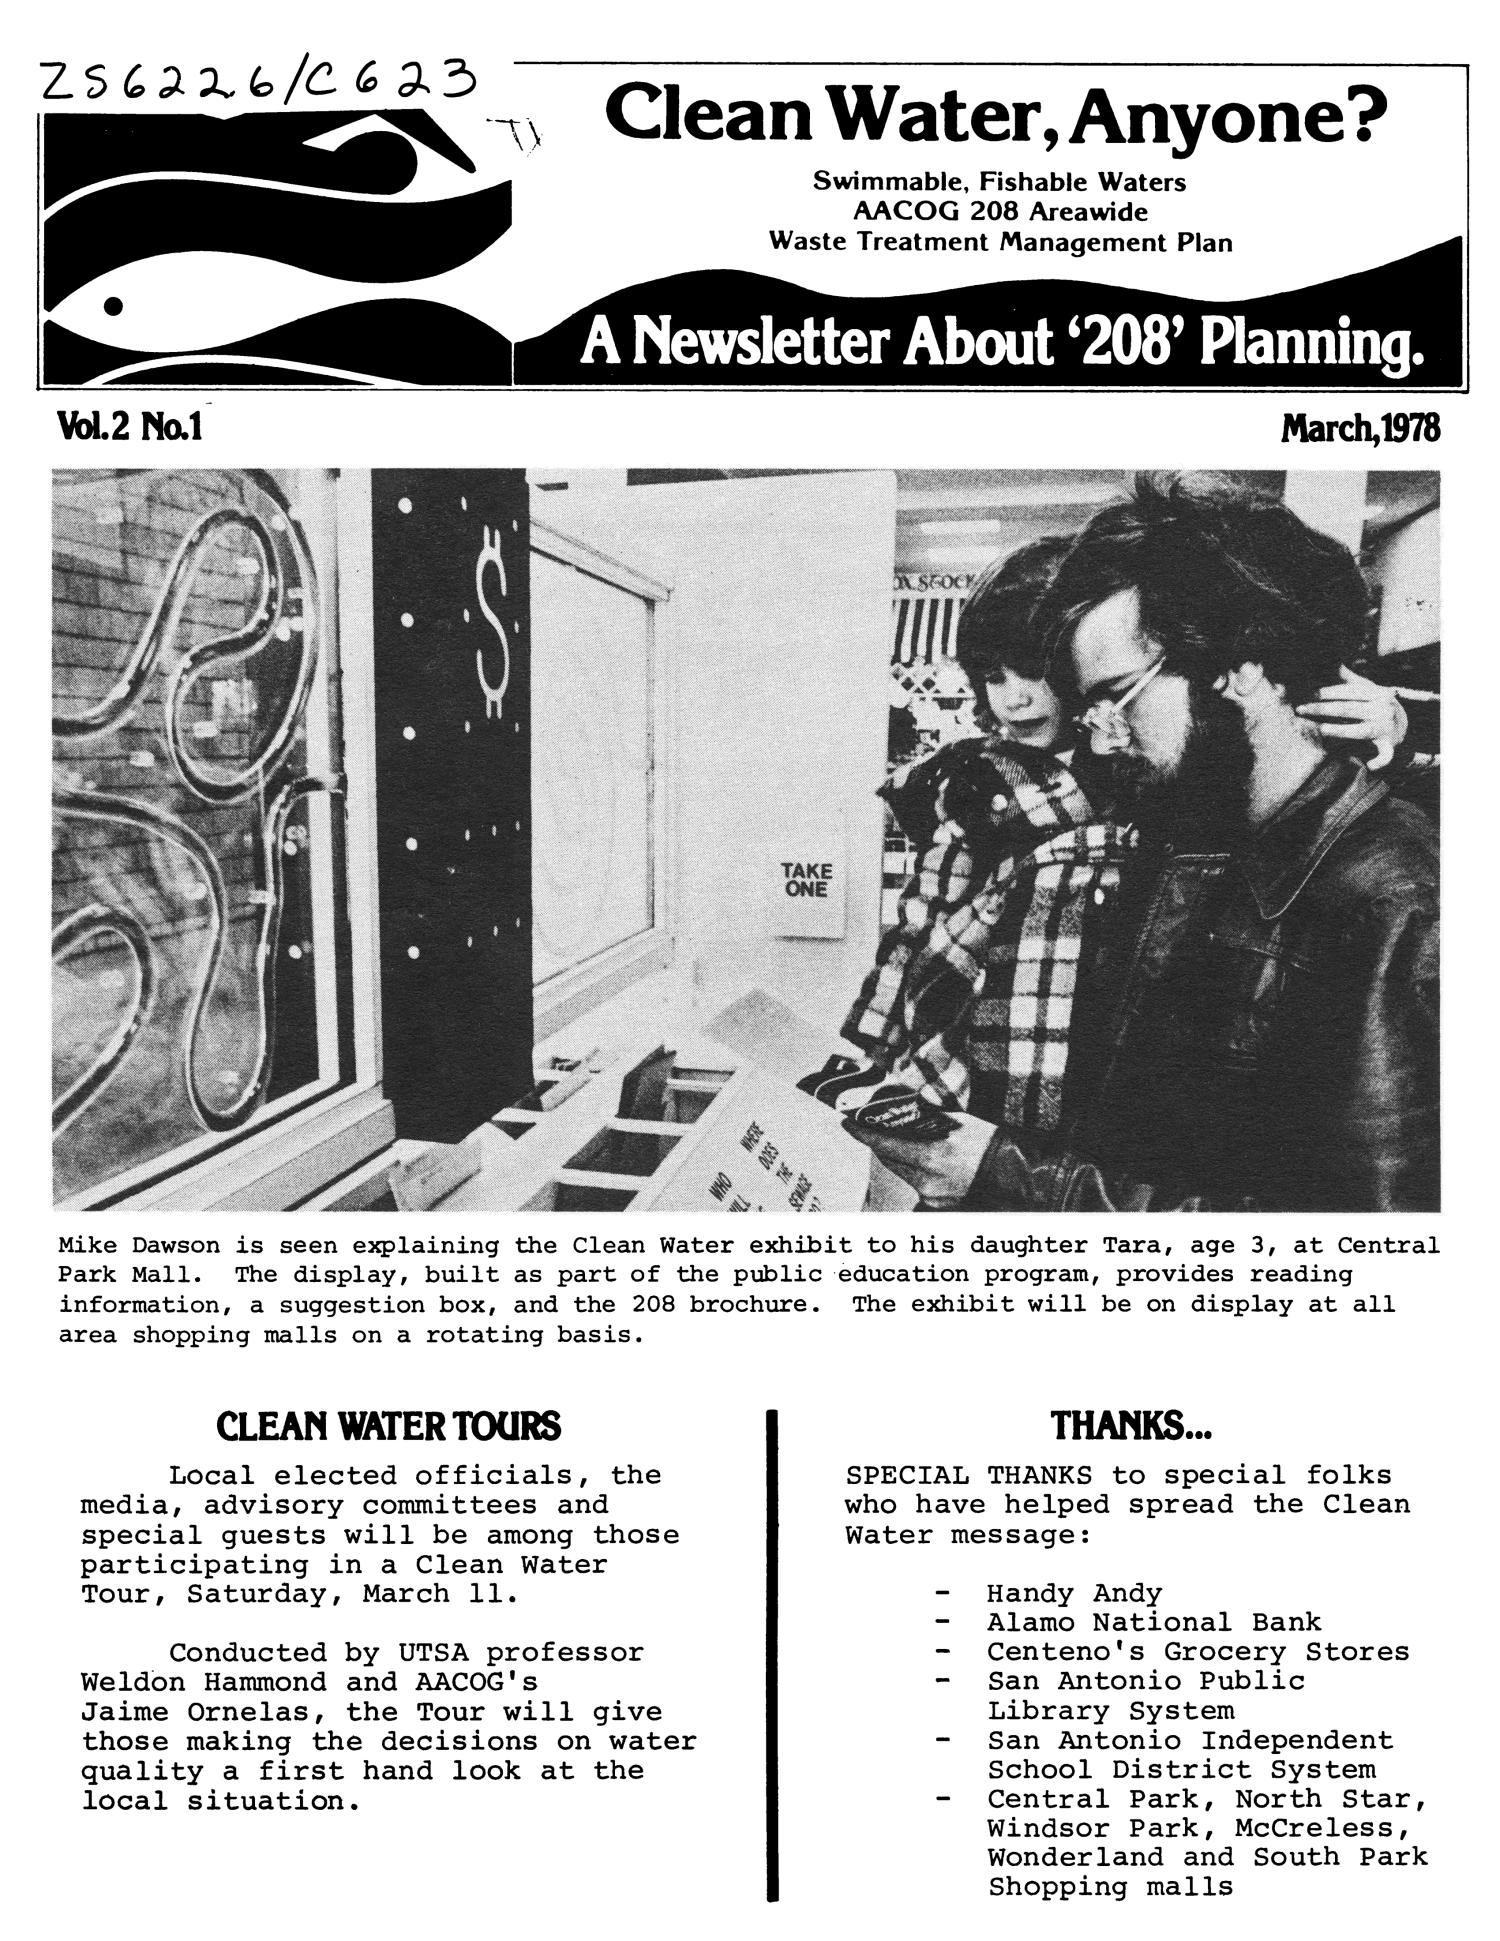 Clean Water, Anyone?, Volume 2, Number 1, March 1978 - The Portal to